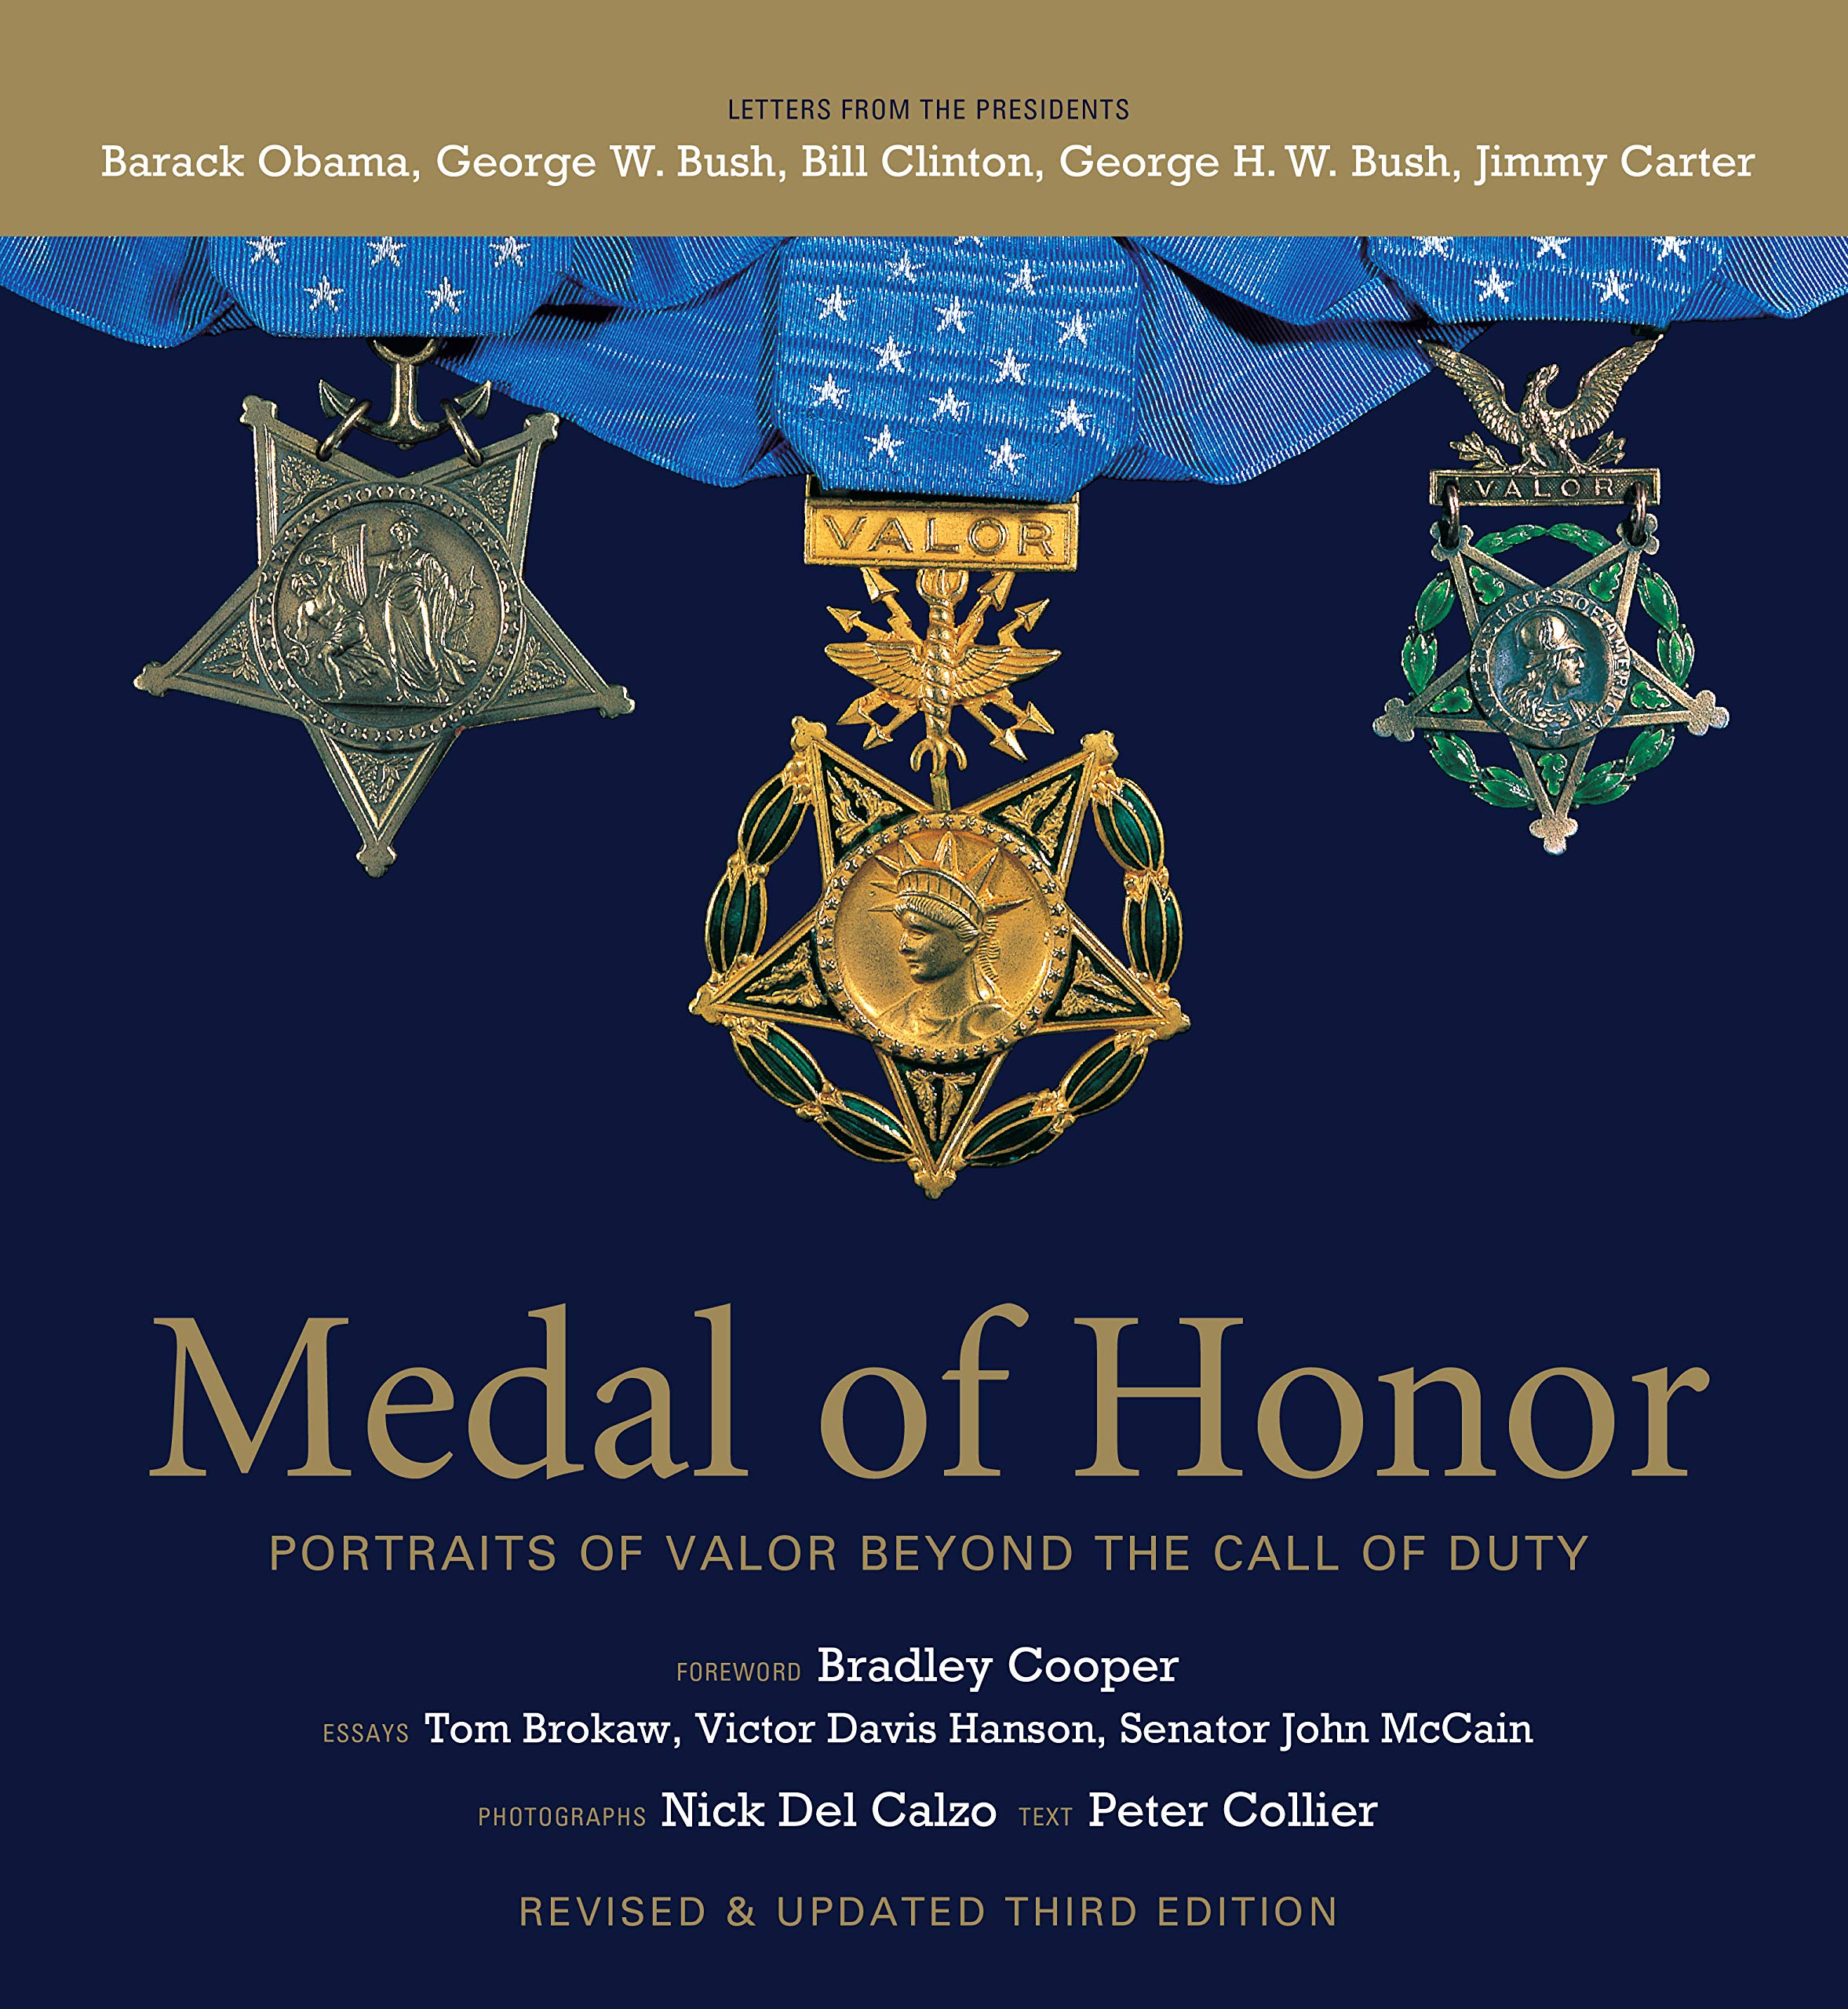 Medal of Honor, Revised & Updated Third Edition: Portraits of Valor Beyond the Call of Duty pdf epub